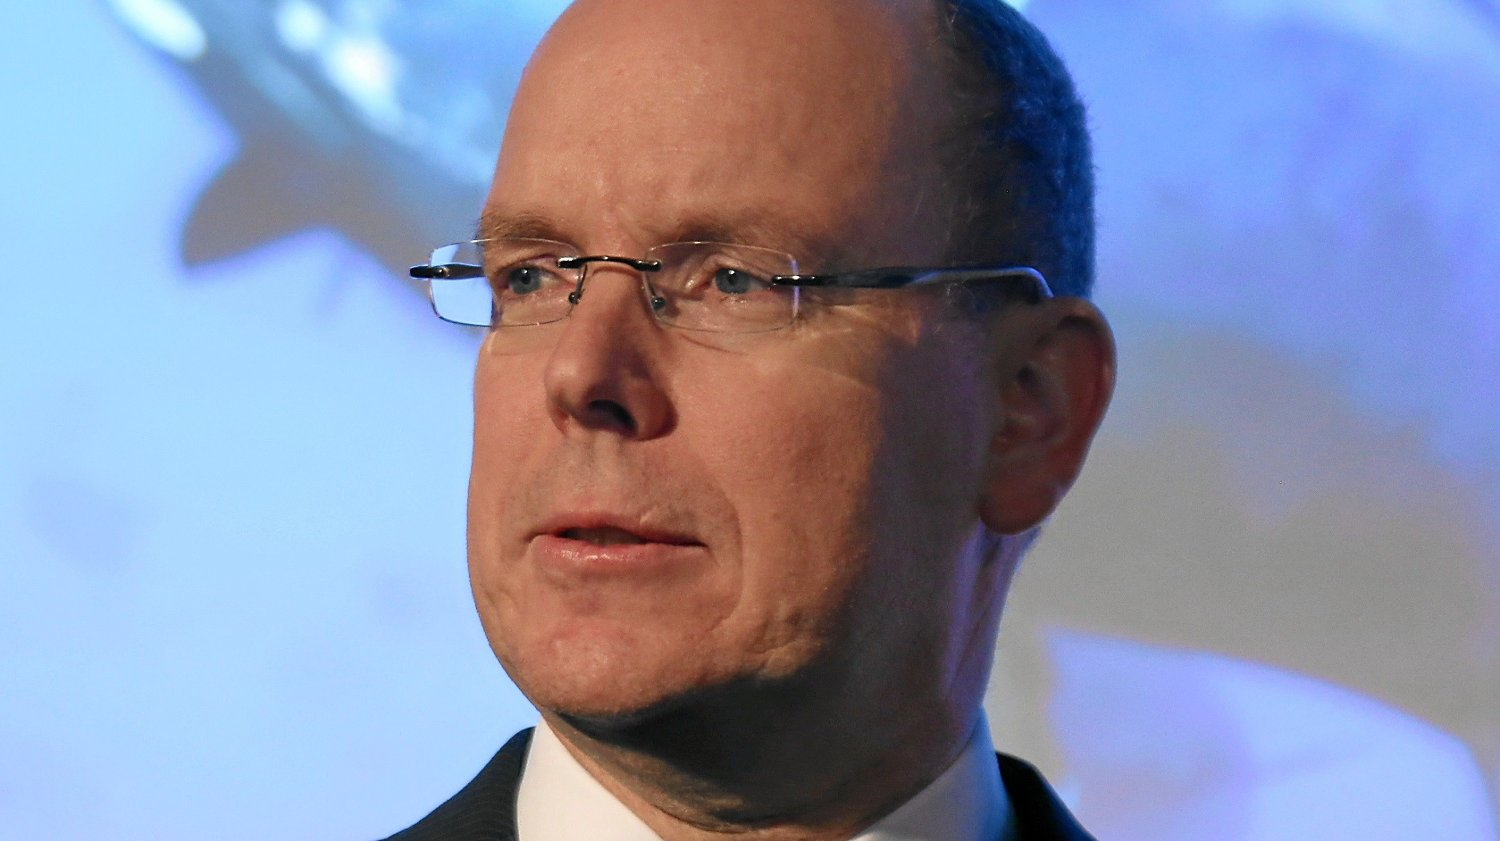 Bolstering Ocean Resilience: H.S.H. Prince Albert II of Monaco CC BY-SA 2.0, https://commons.wikimedia.org/w/index.php?curid=24270752